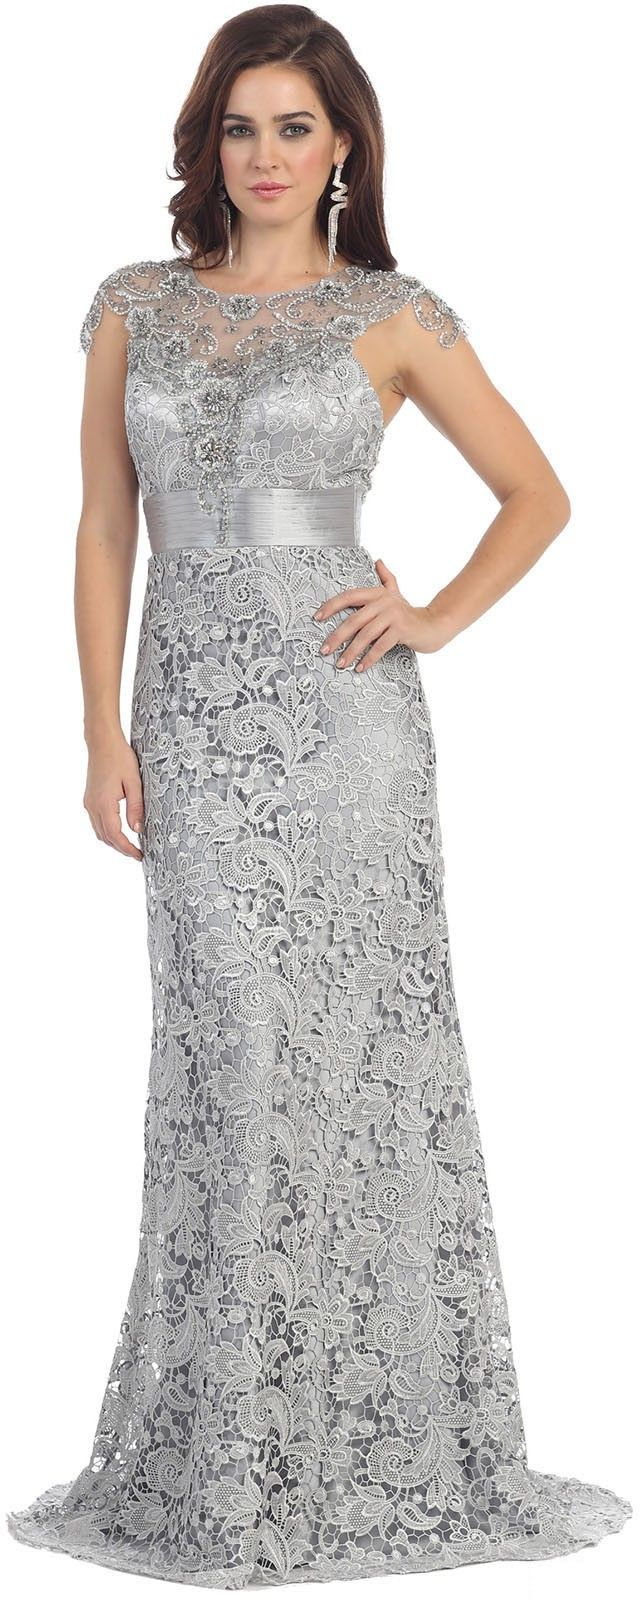 Lace bridesmaid dress Walmart | My Wedding | Mother of the bride